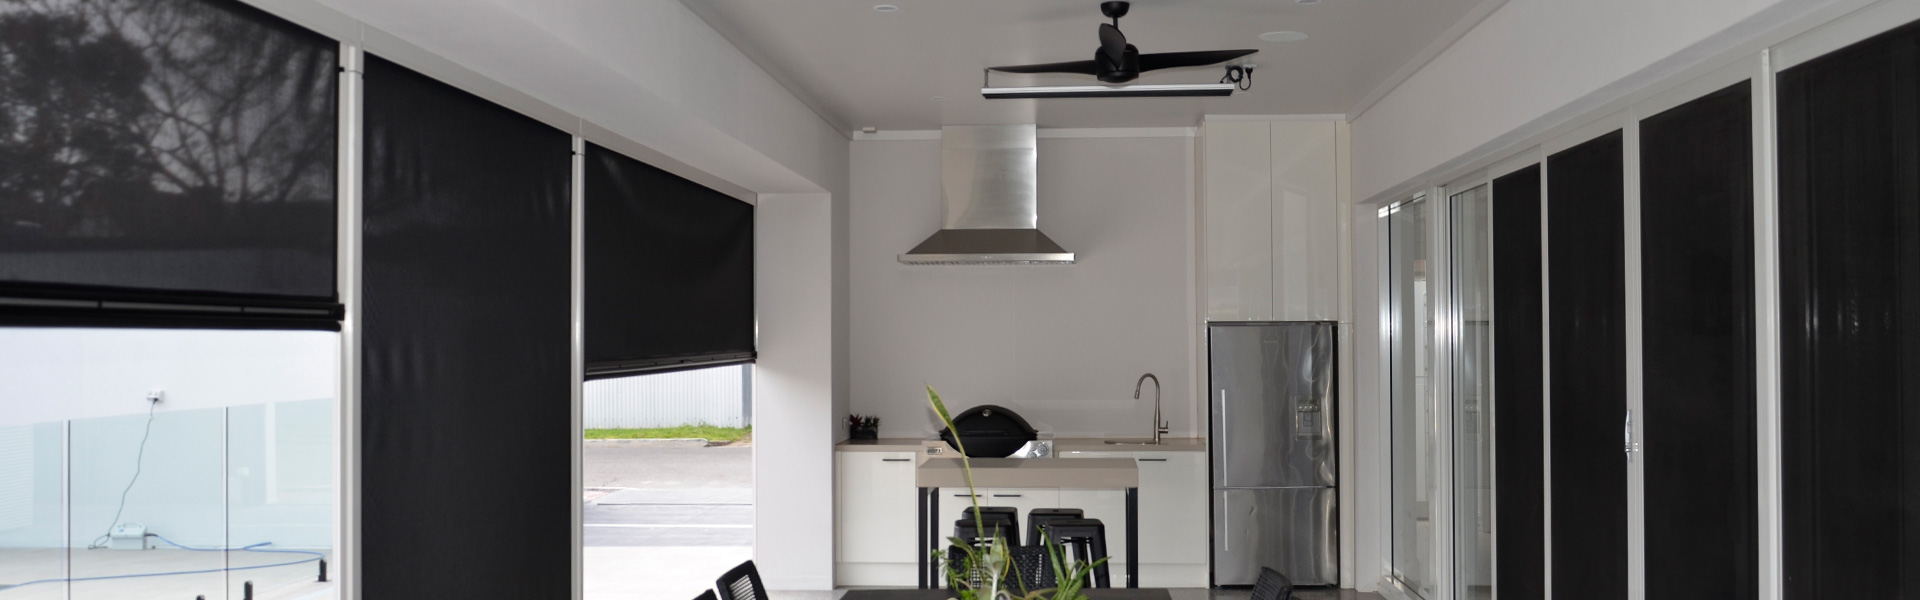 Outdoor Fans | Outdoor Heaters | Inviron Blinds Adelaide